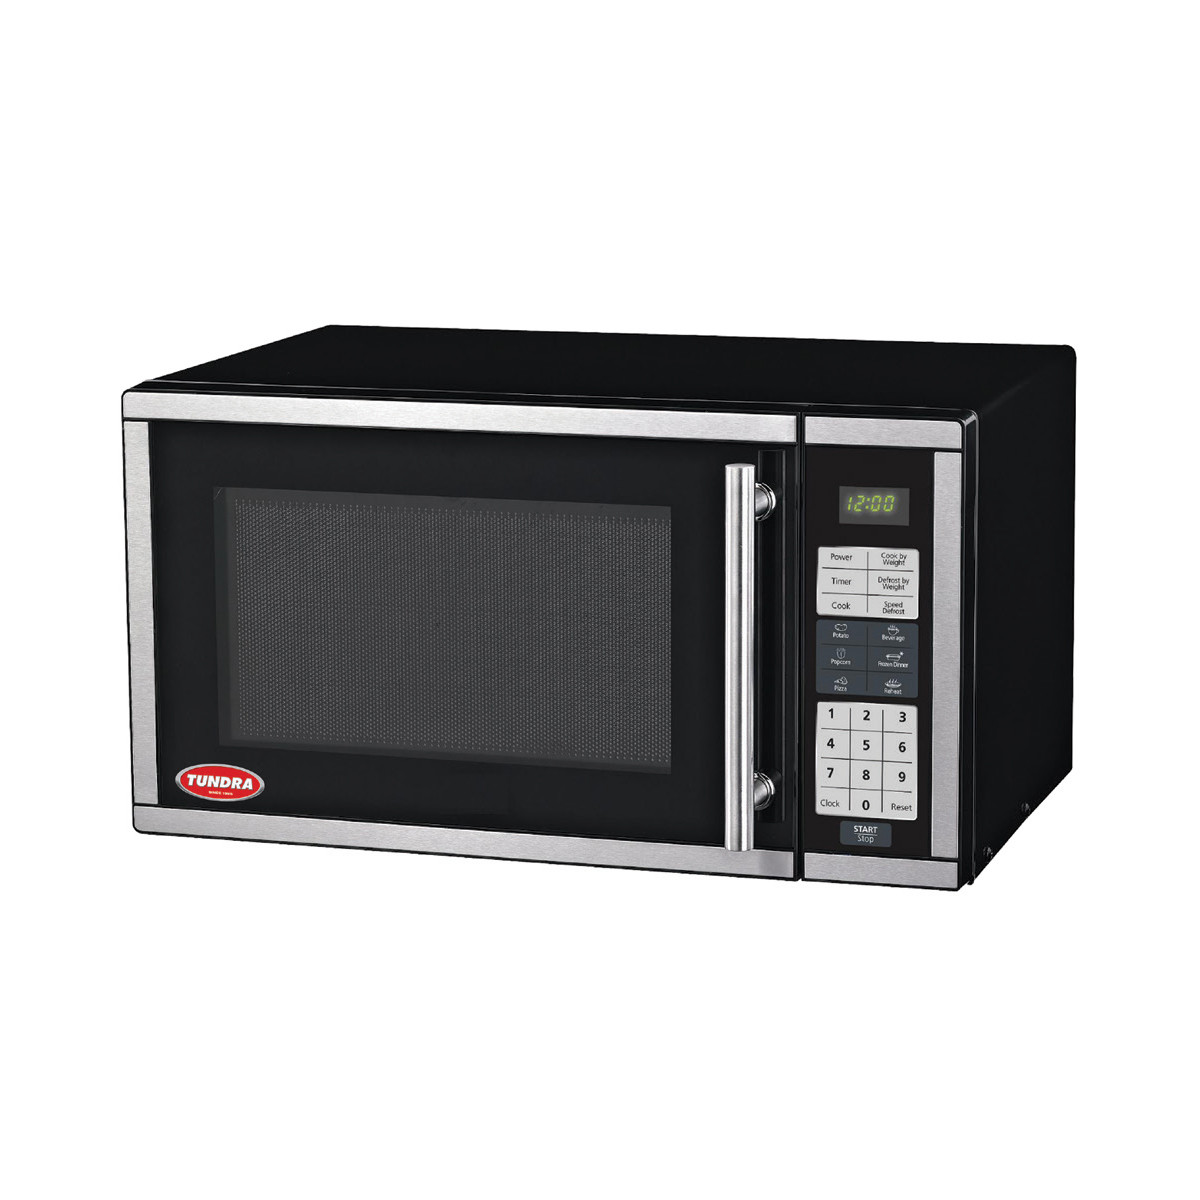 Truck Microwave Oven